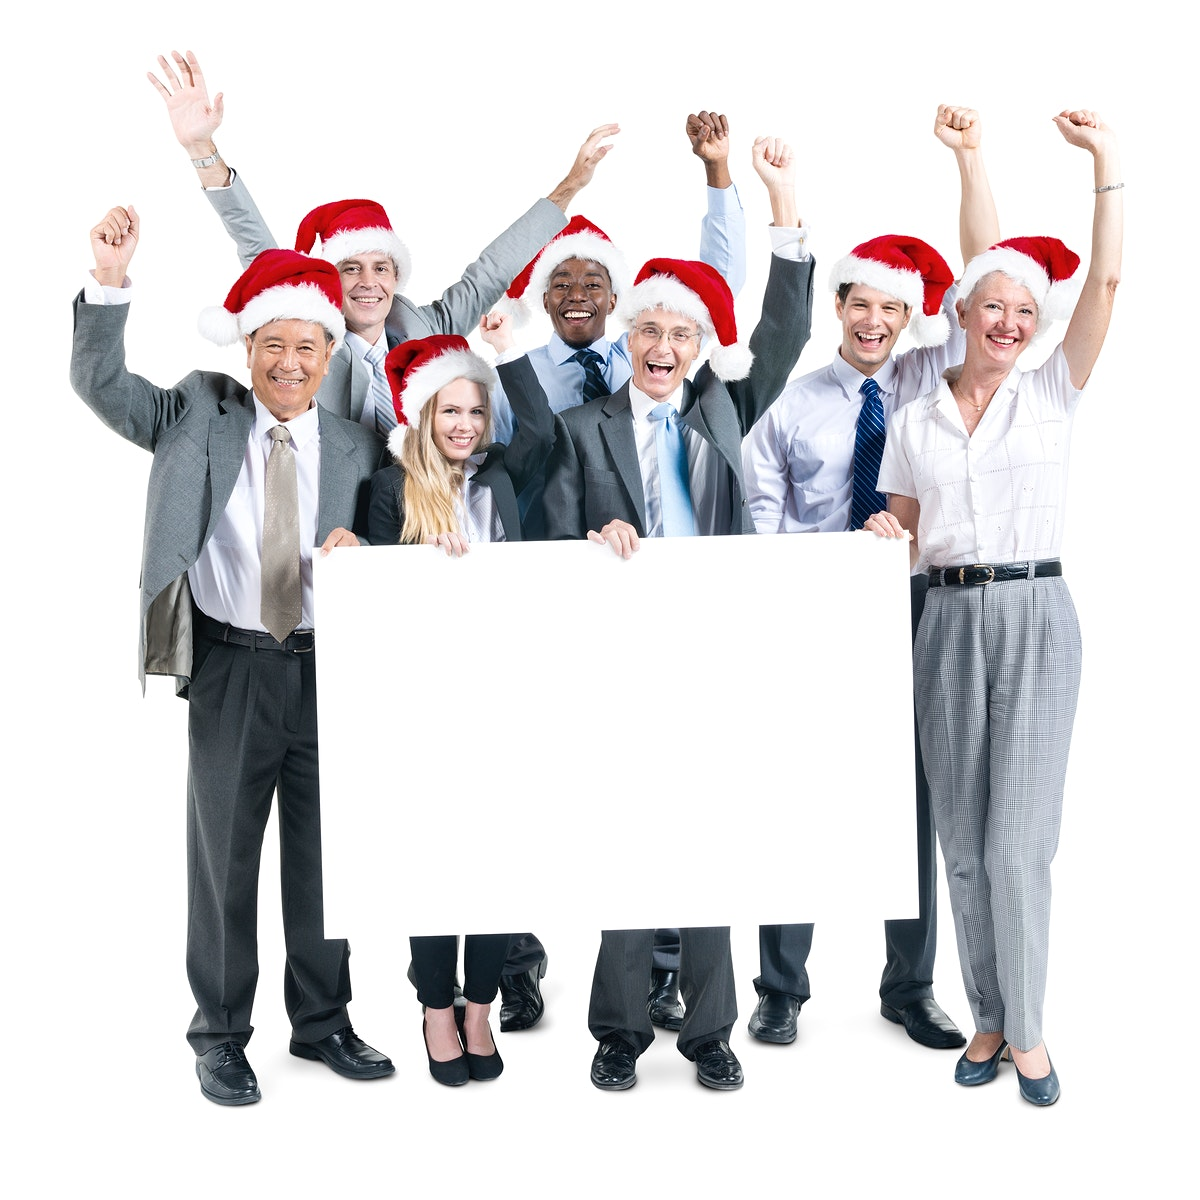 Business People Celebration Banner Copy Space Christmas Concept